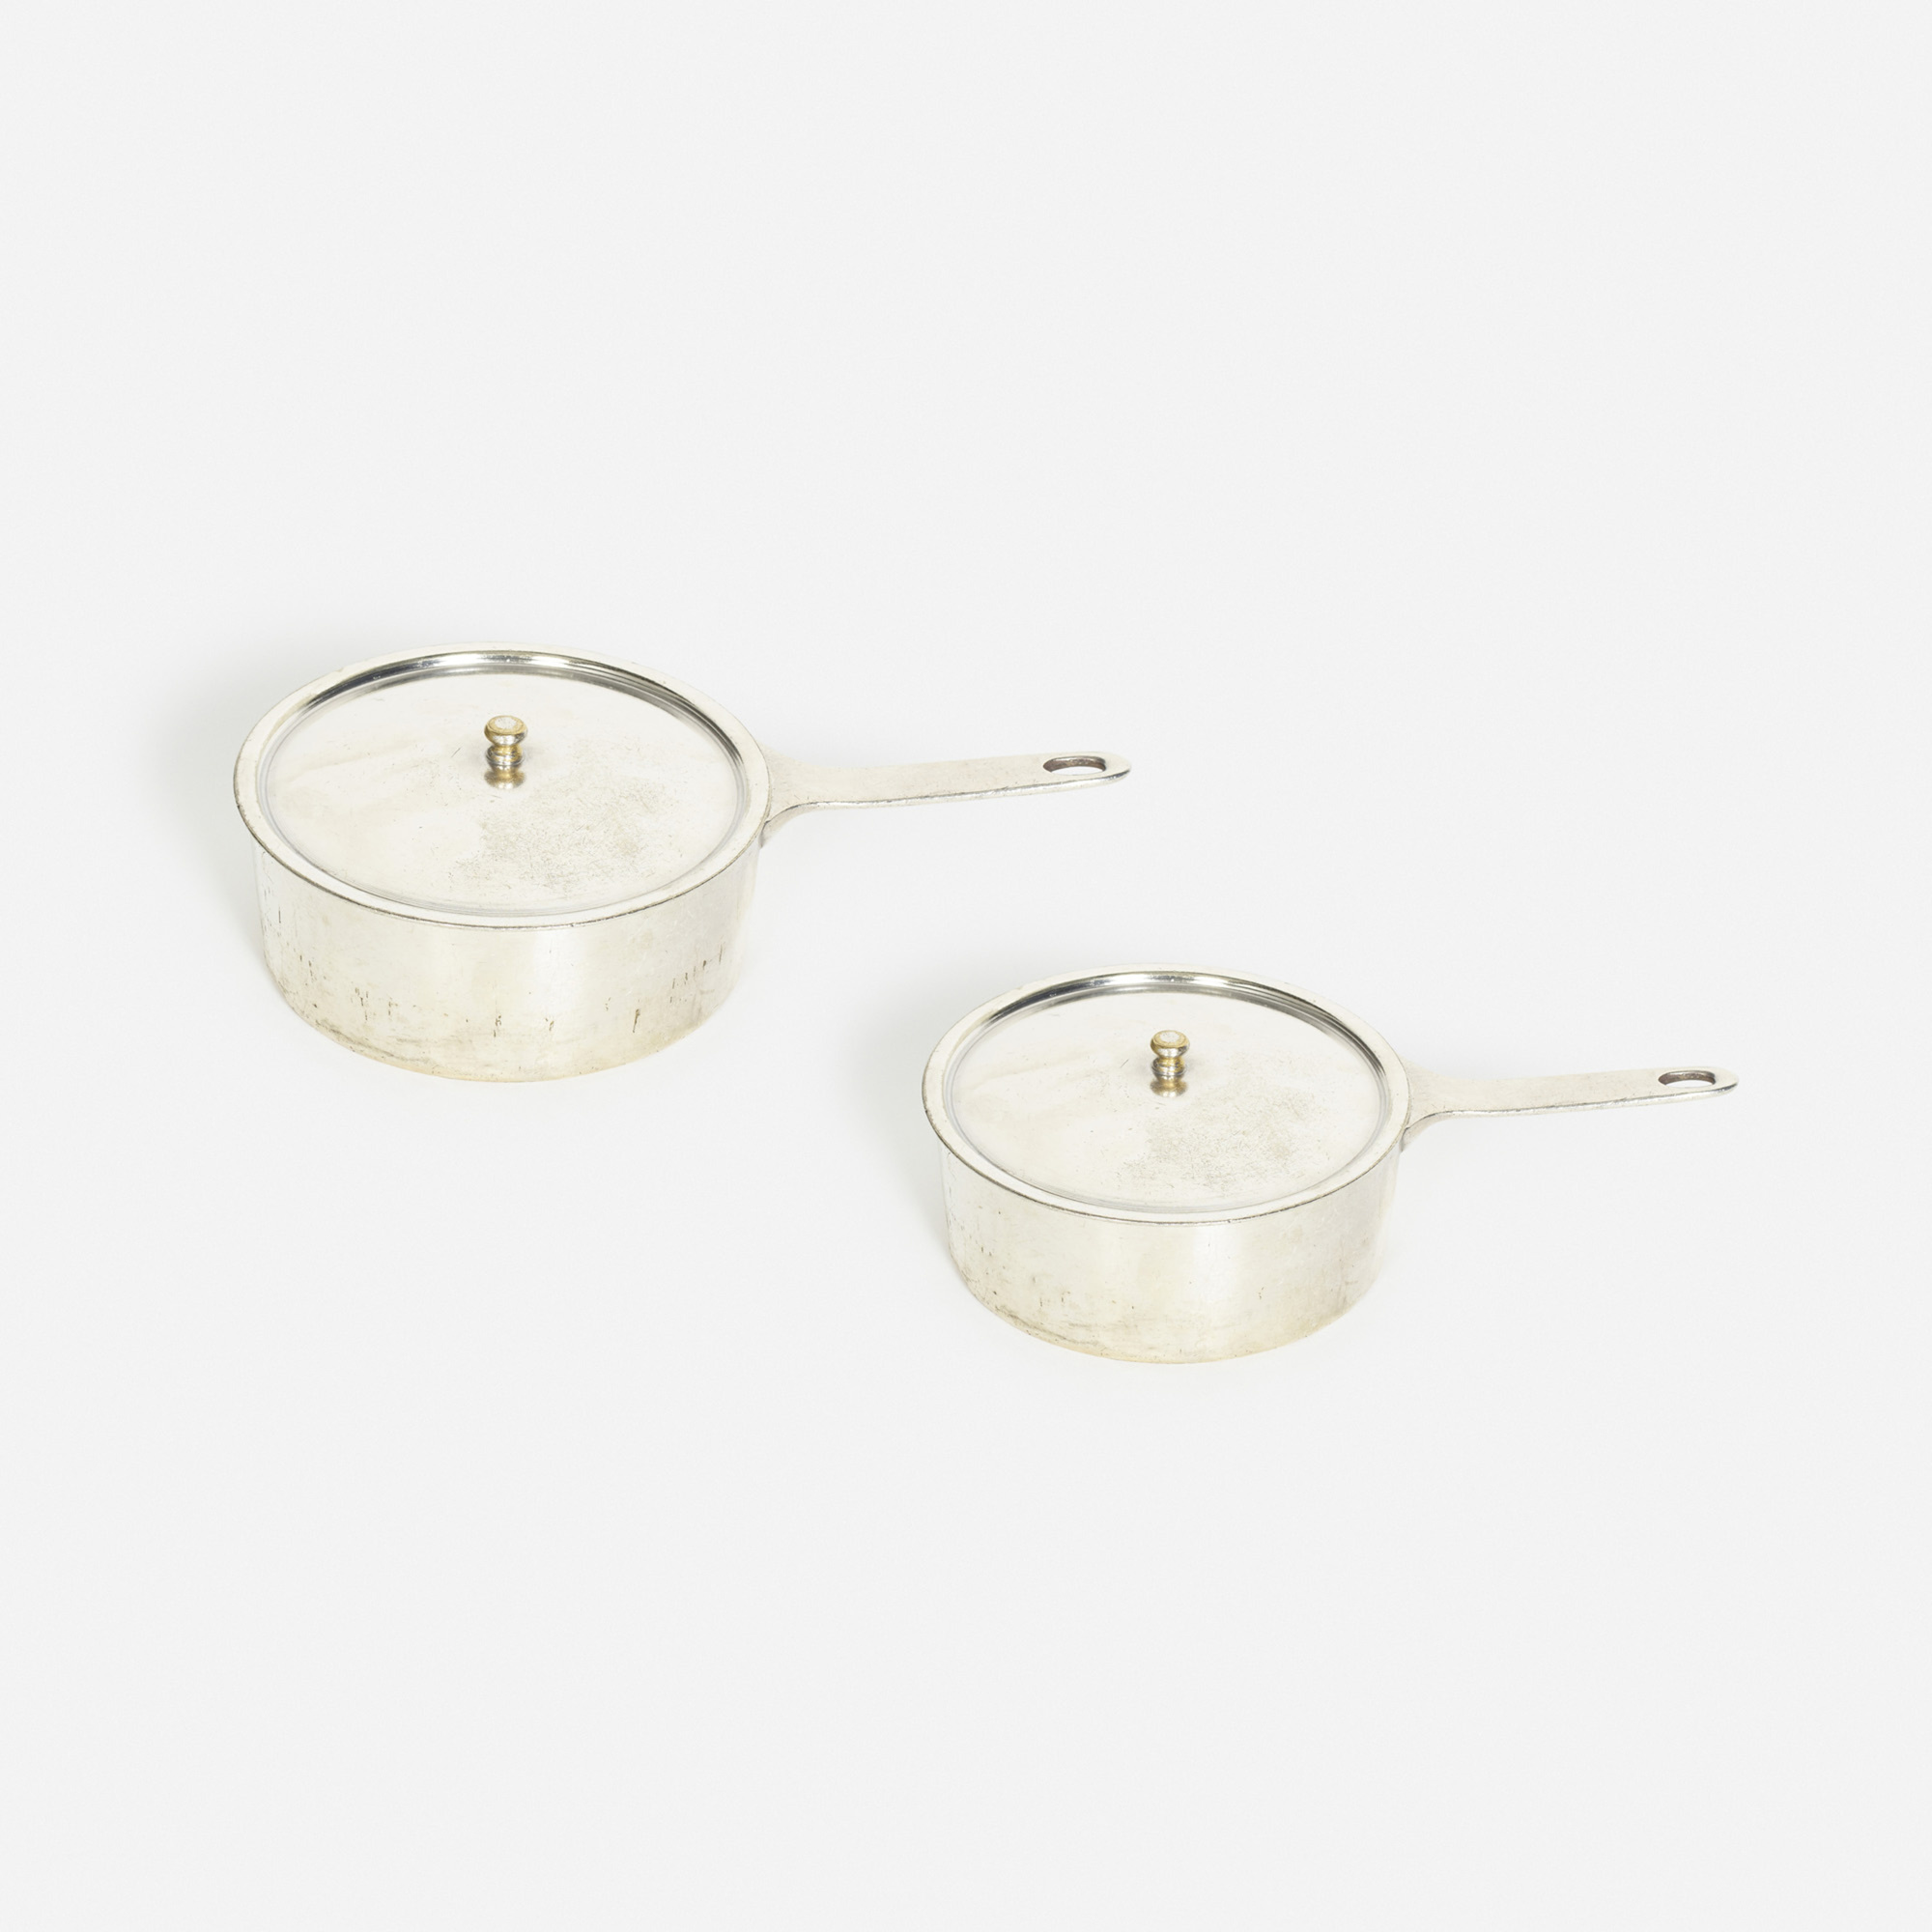 864: Garth and Ada Louise Huxtable / sauce pots from the kitchen of The Four Seasons, set of two (1 of 1)